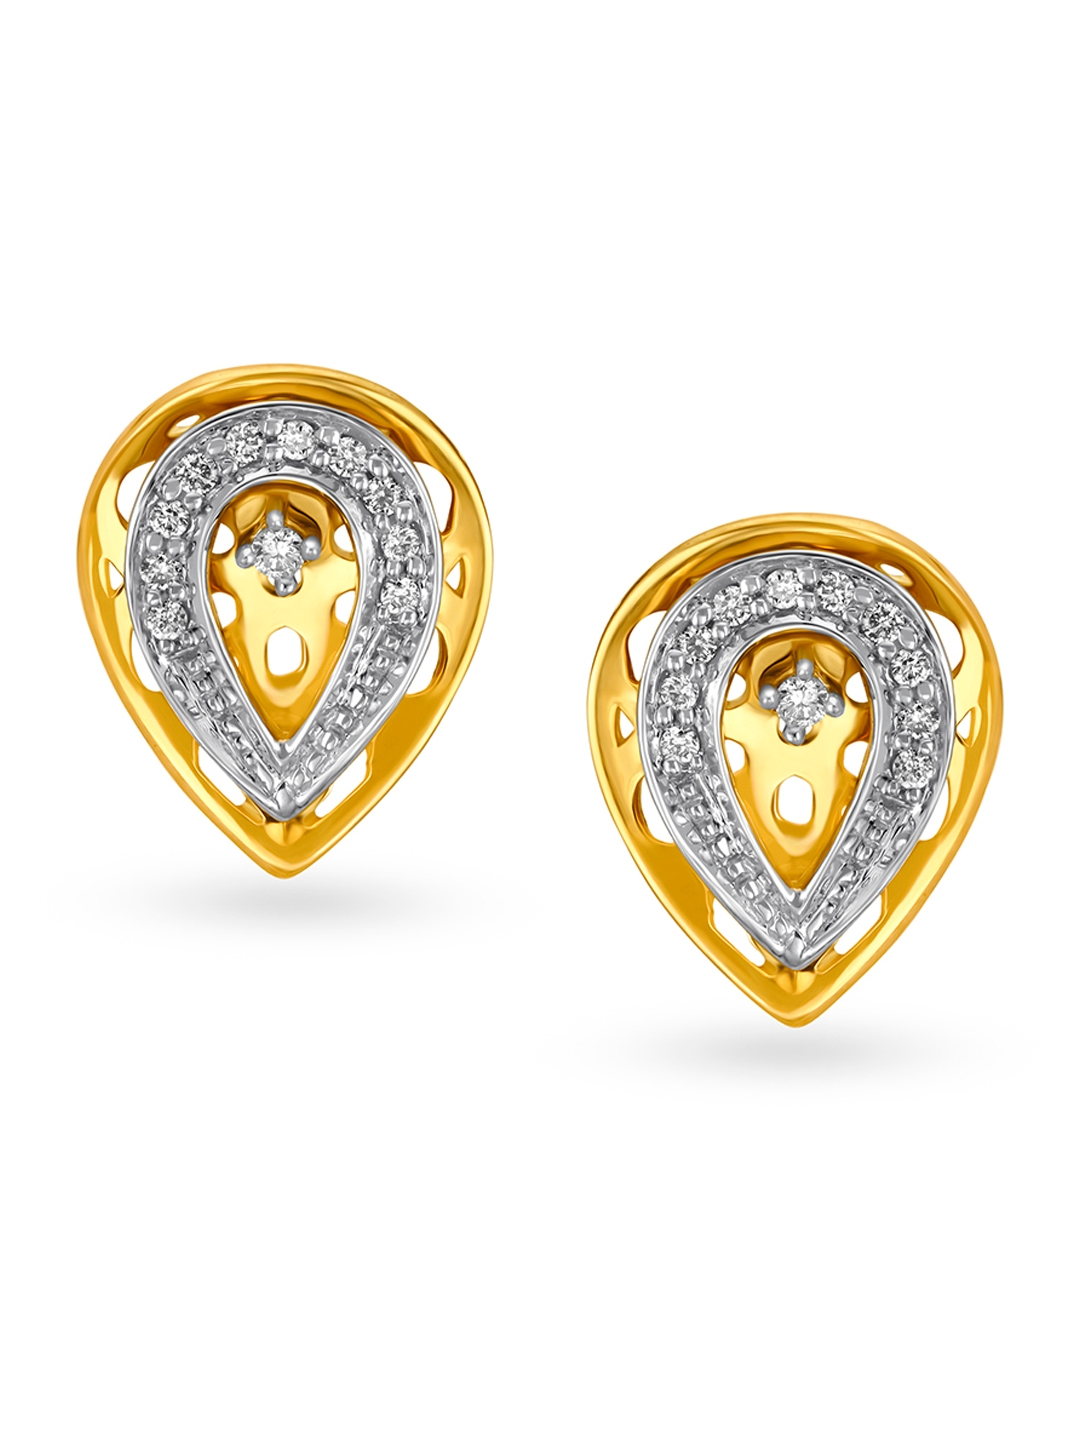 Mia by Tanishq 14KT Yellow Gold Diamond Stud Earrings